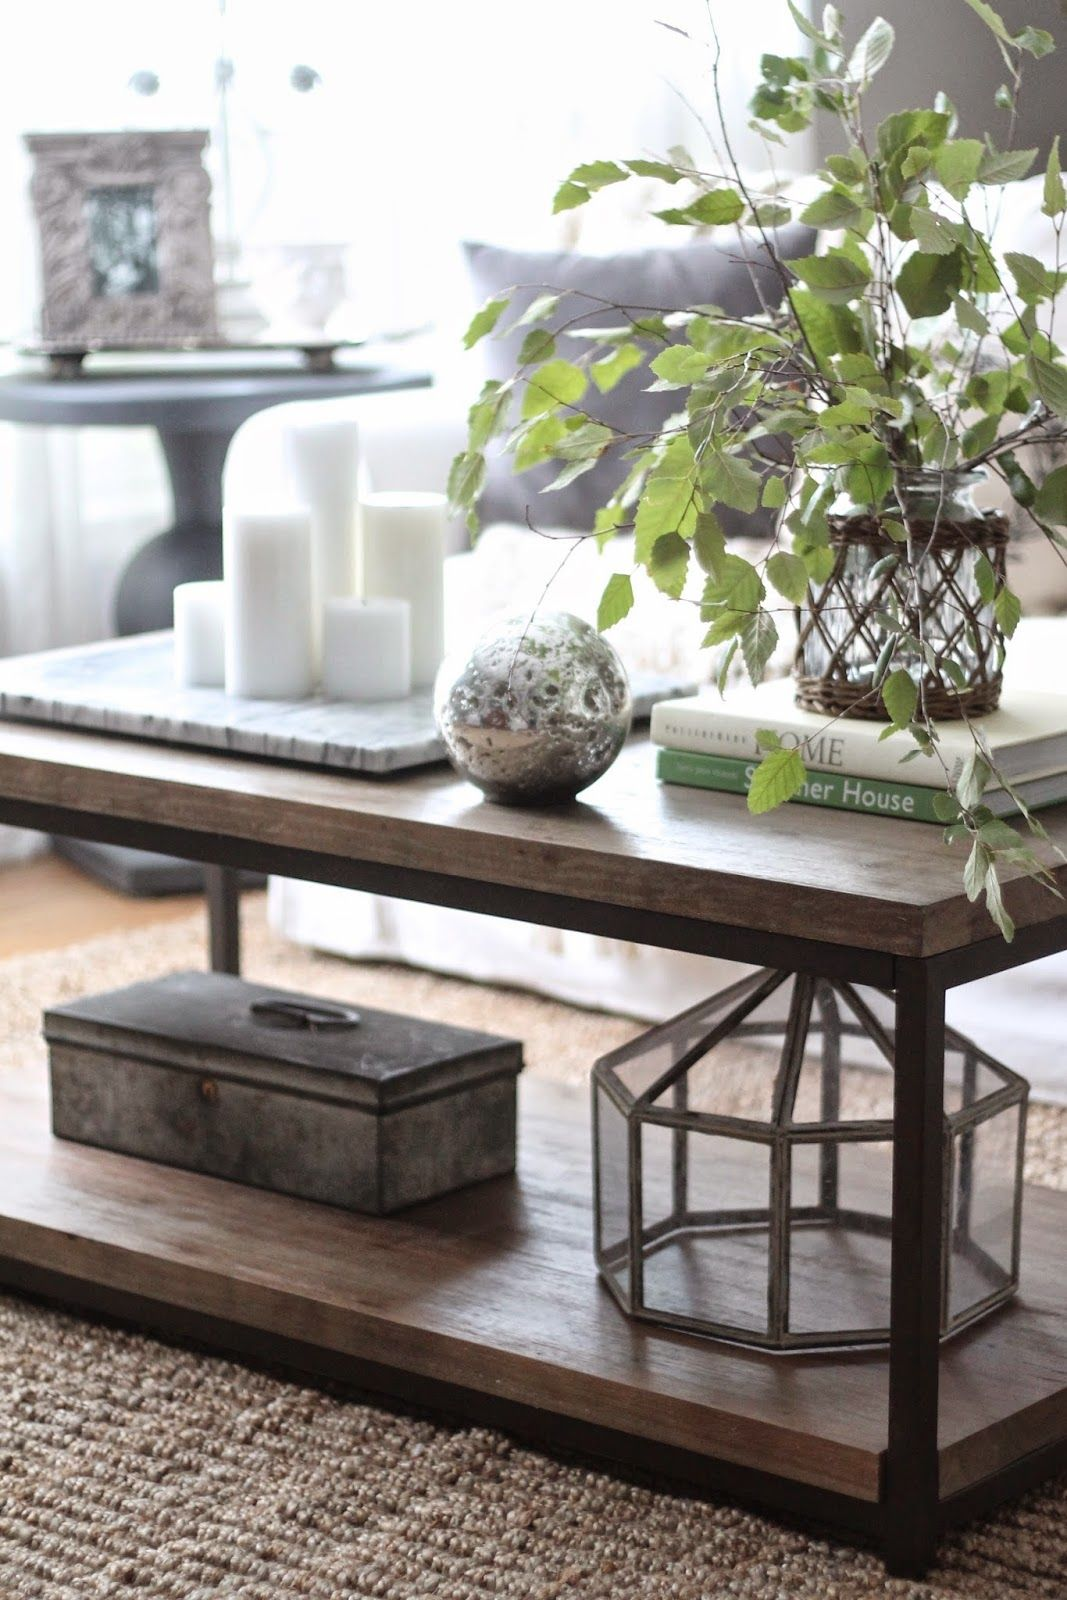 living room side table decorating ideas beige color schemes rooms 3 ways to style a coffee my home blog pinterest with lots of tips and tricks from each look